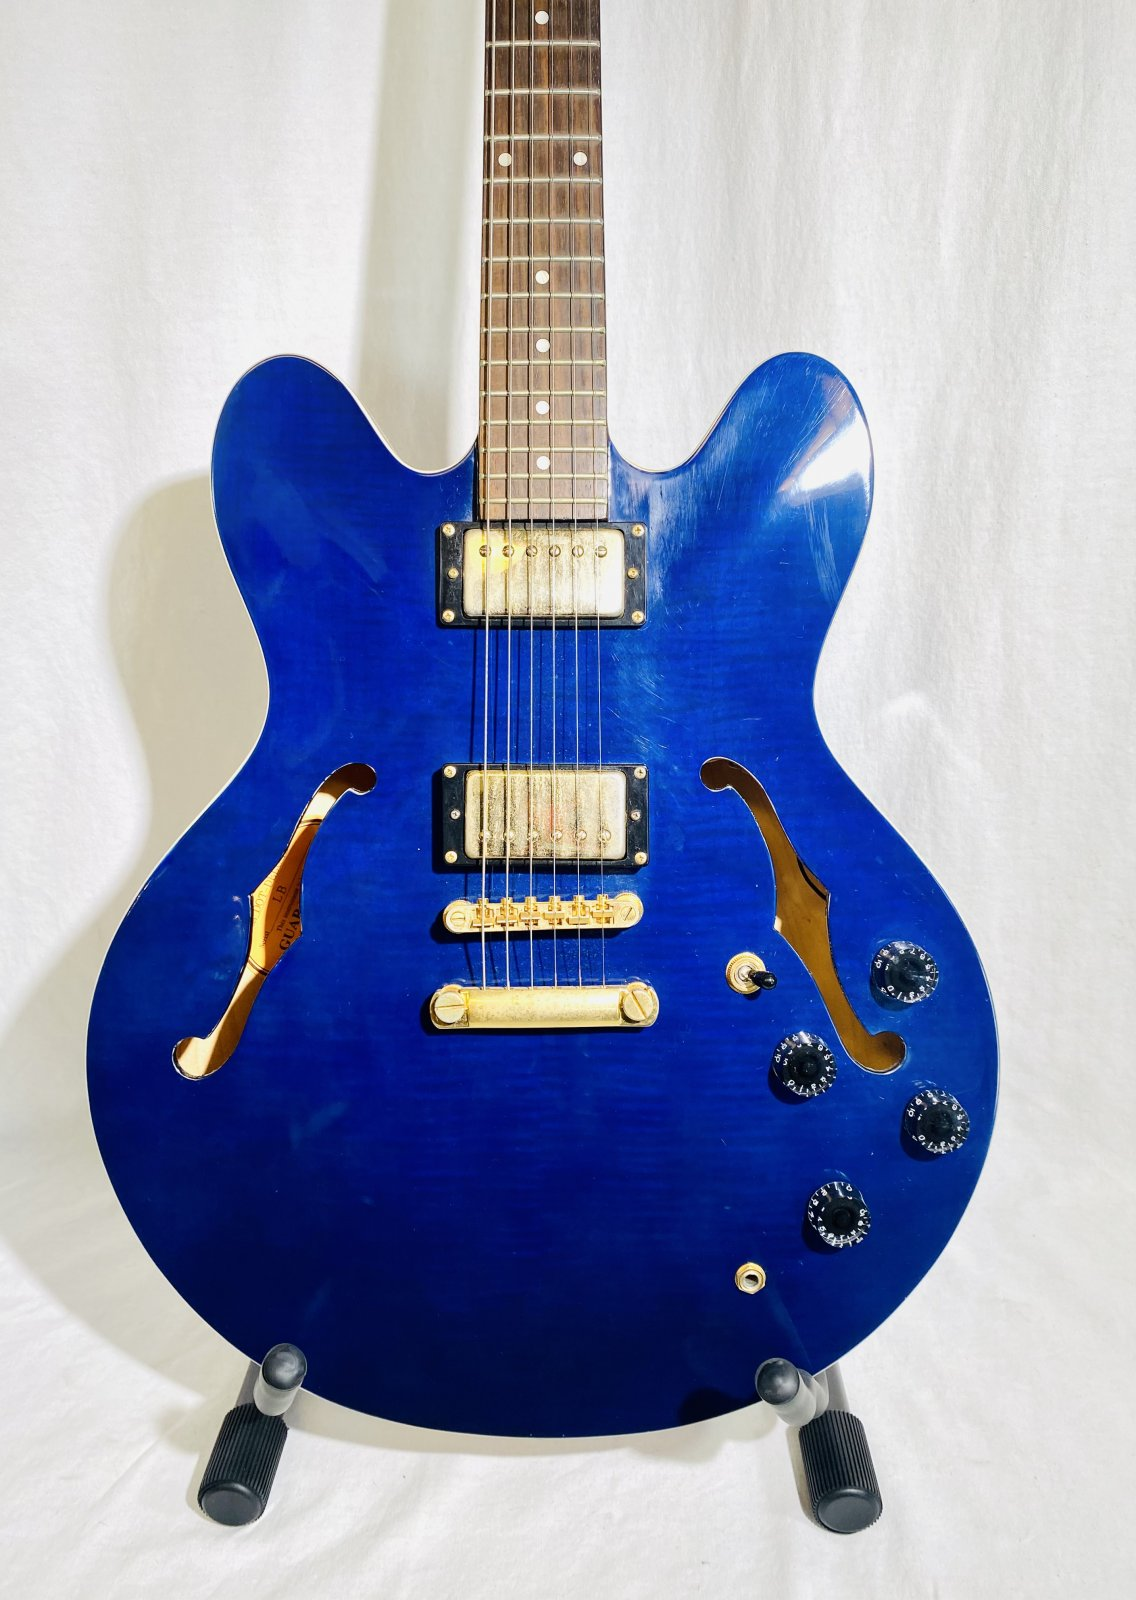 EPIPHONE DOT DELUXE ELECTRIC GUITAR WITH HARD CASE